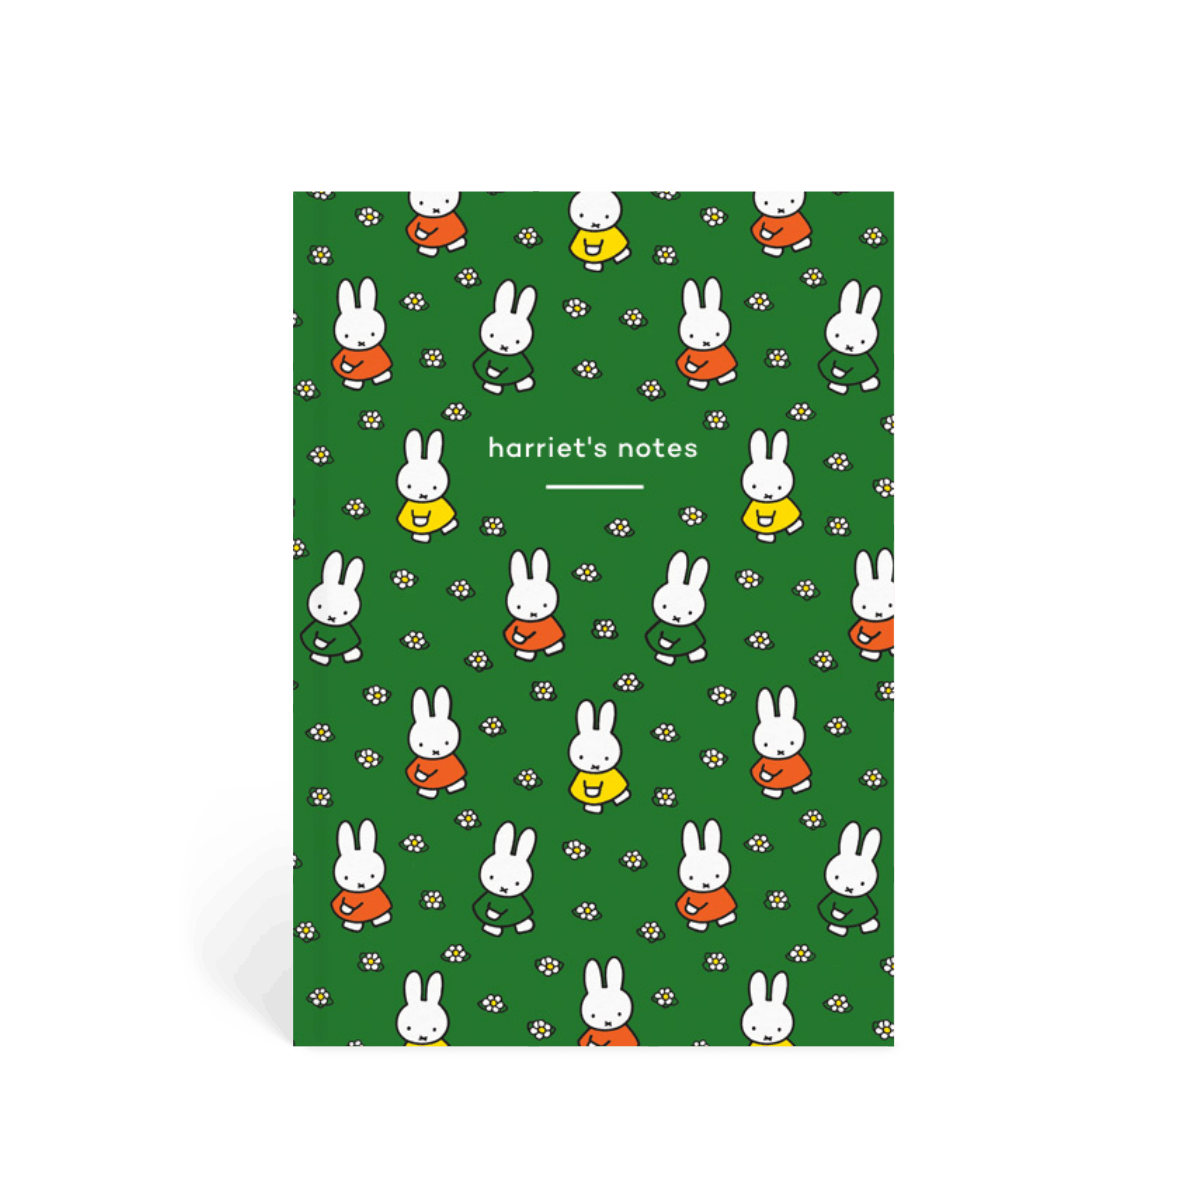 Https%3a%2f%2fwww.papier.com%2fproduct image%2f95617%2f25%2fdaisy miffy 23977 front 1572433309.png?ixlib=rb 1.1